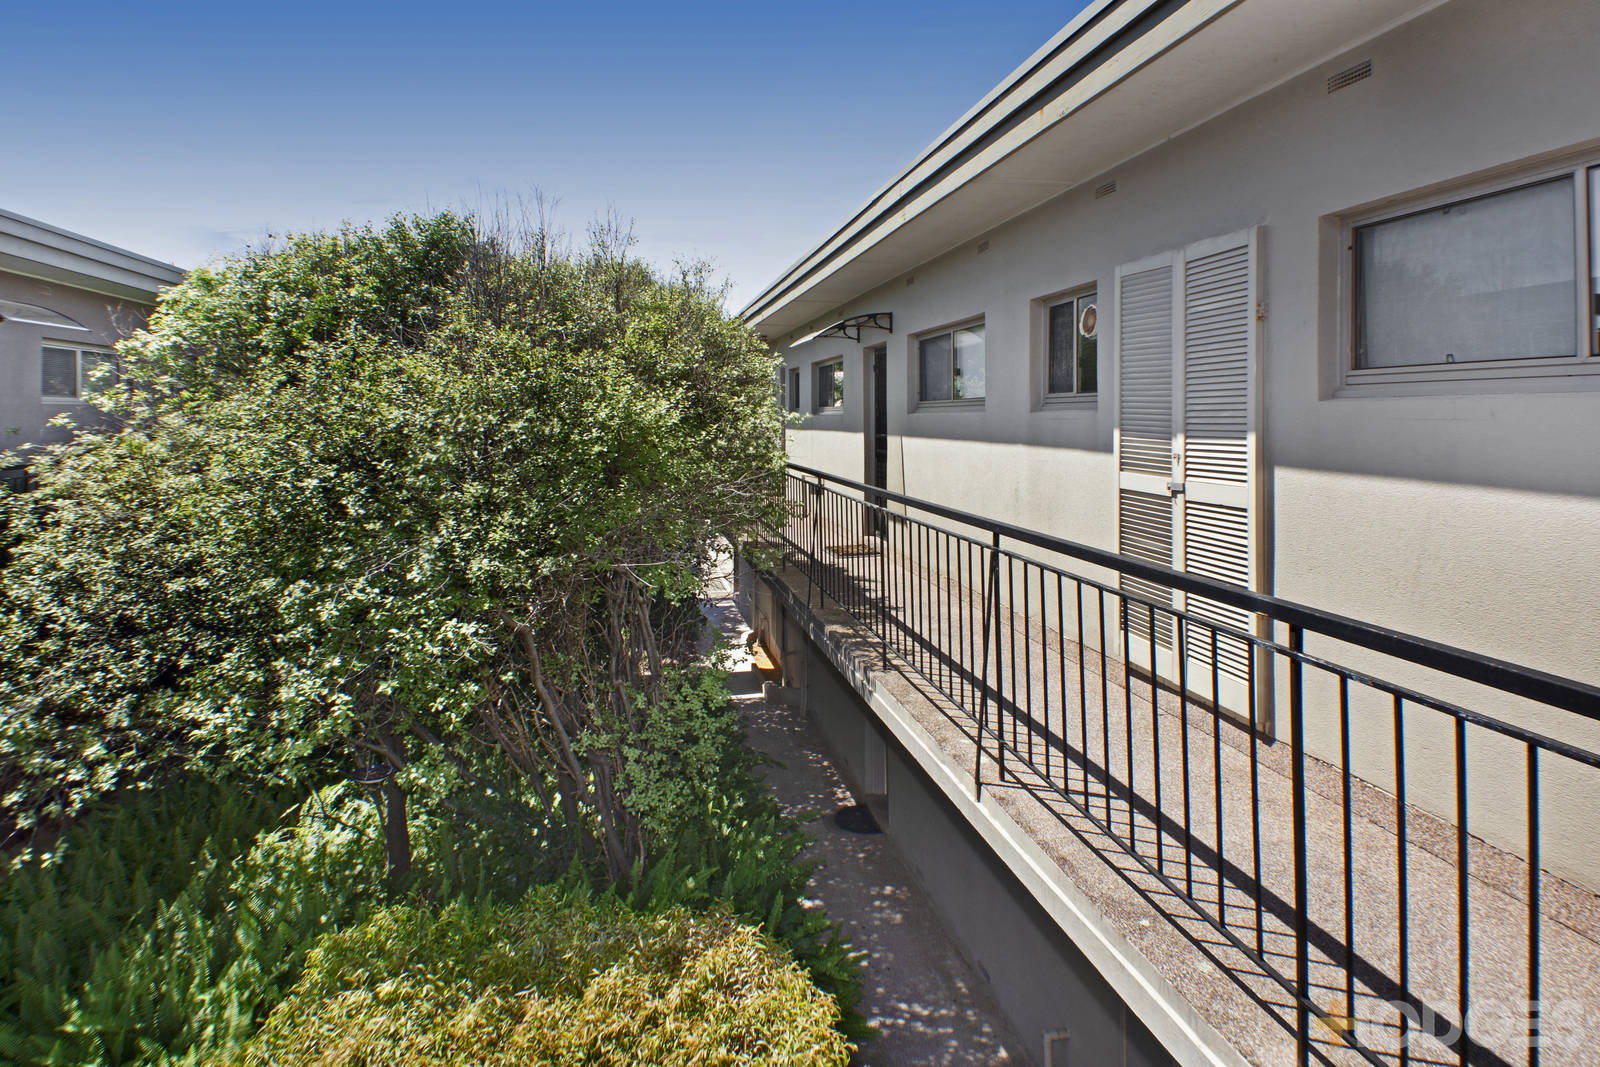 18/70 Beach Road Mentone Photo - 6